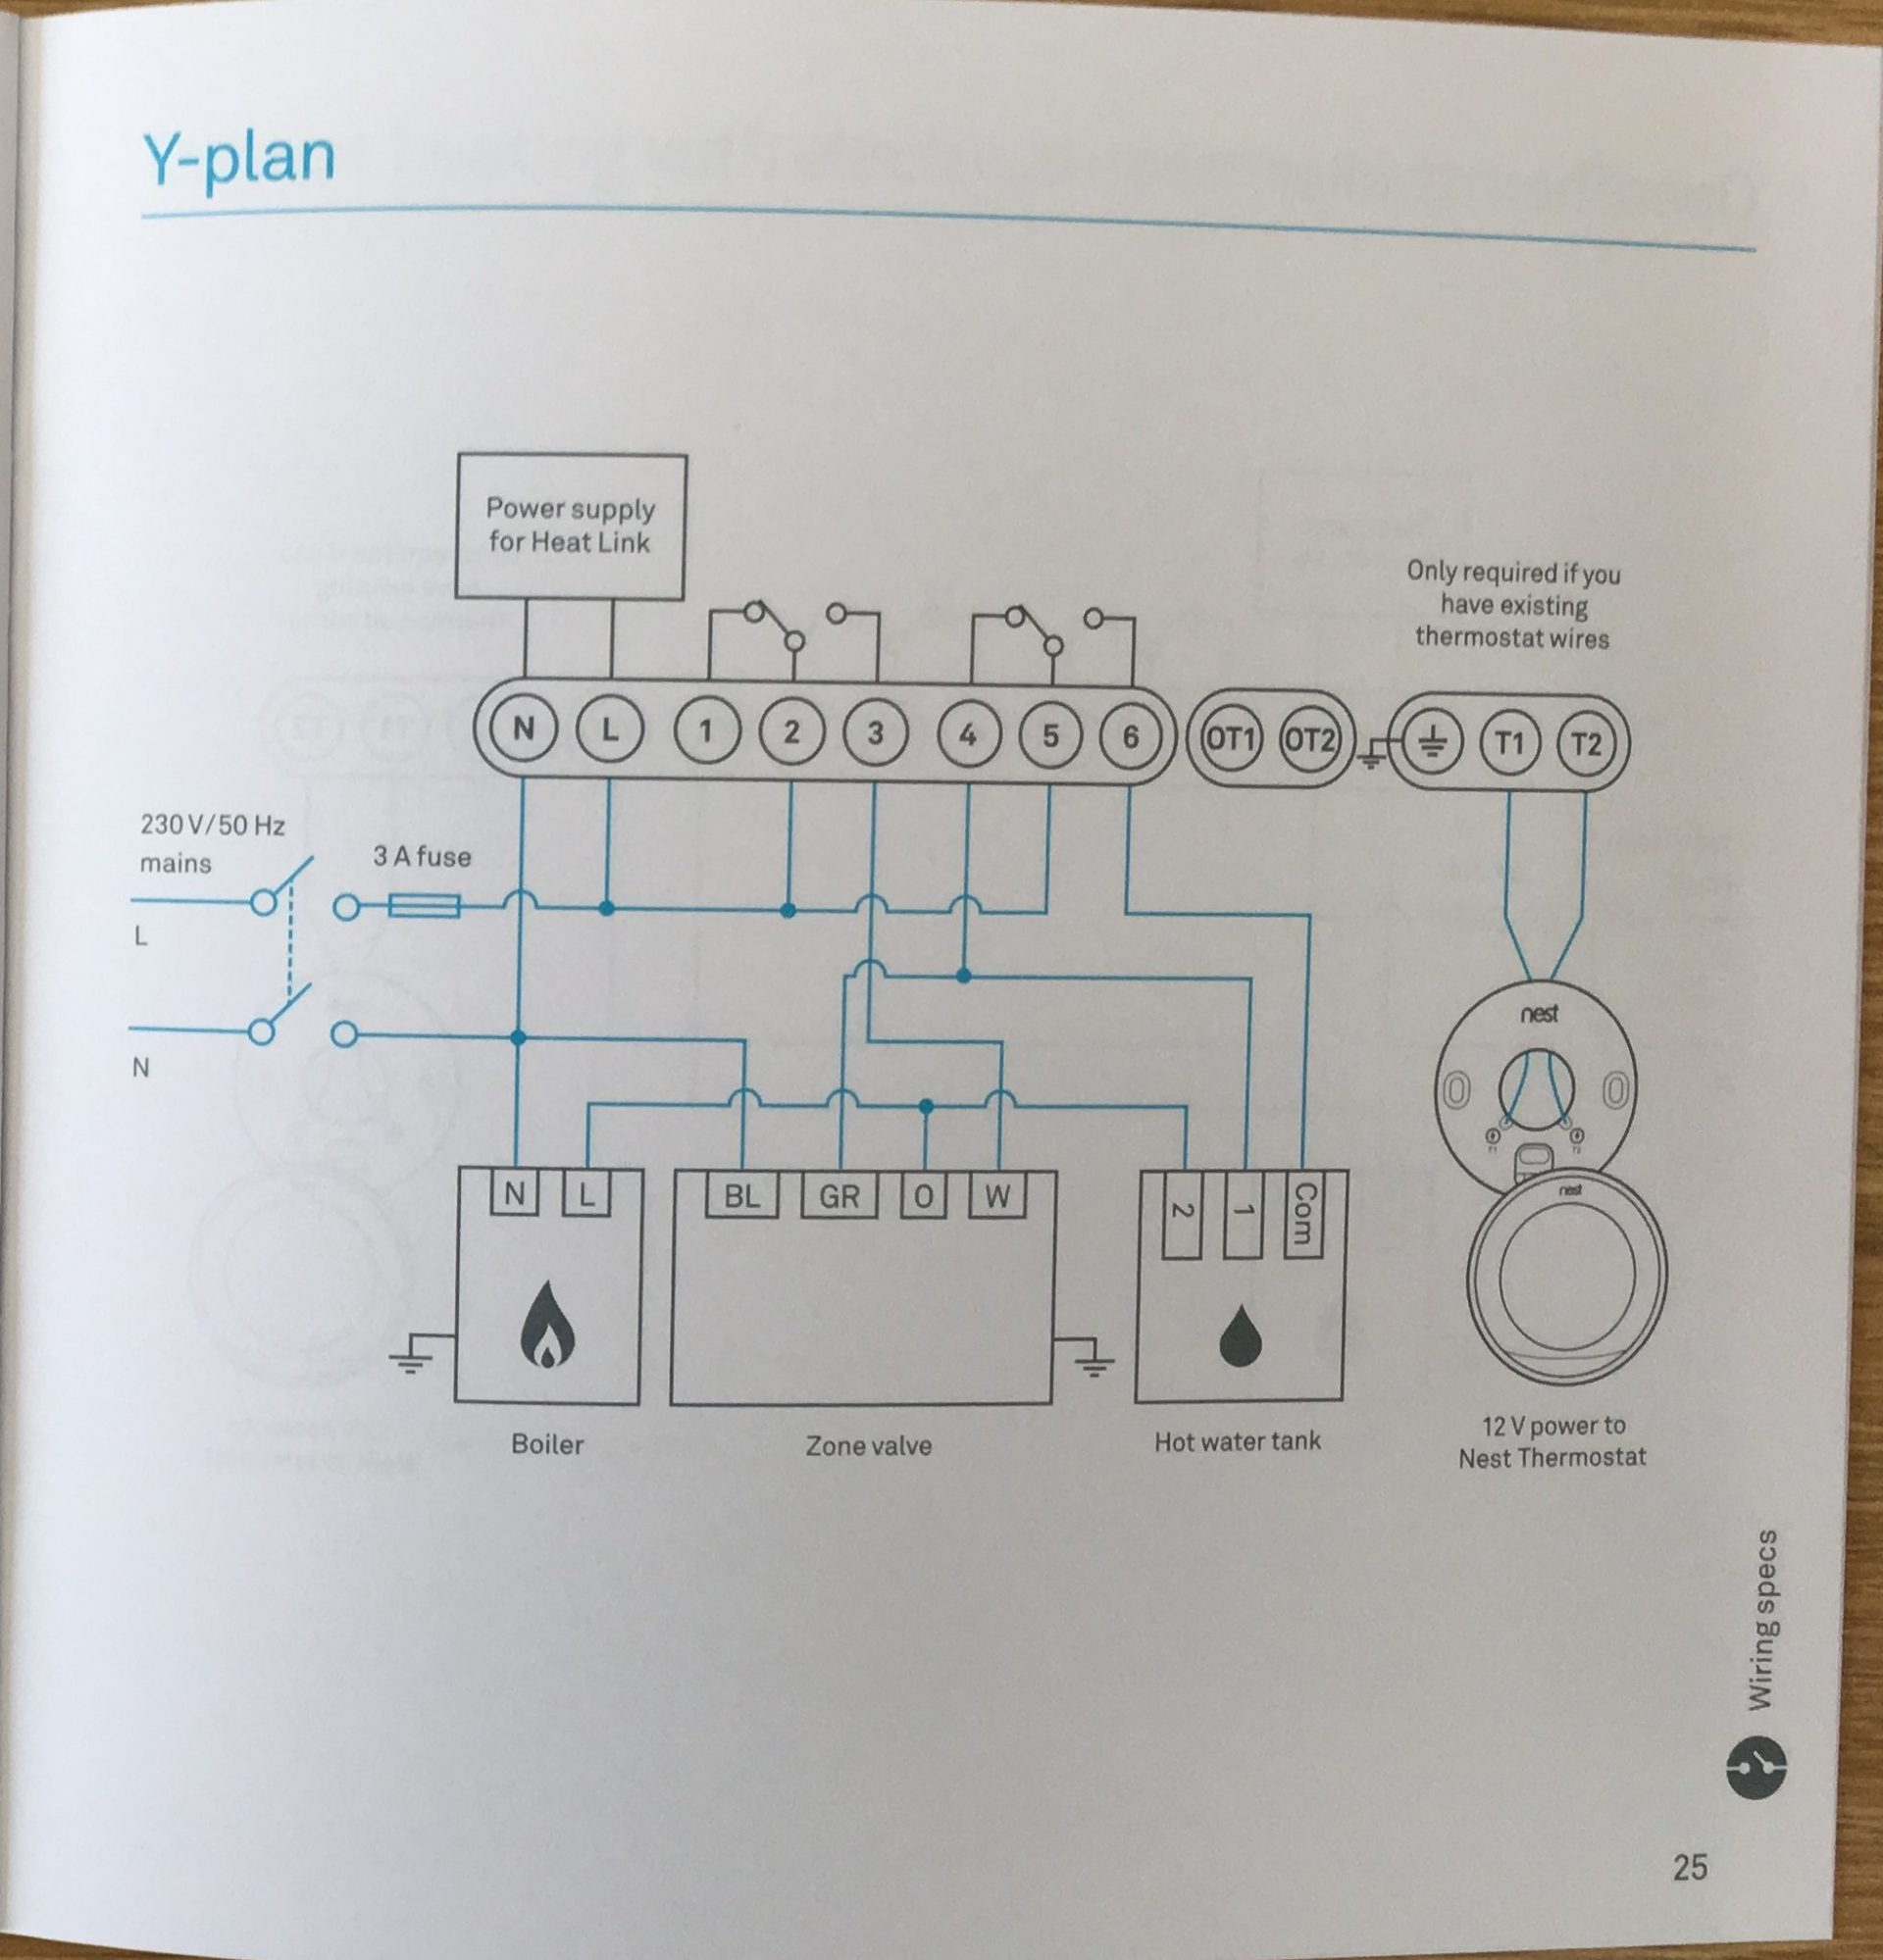 How To Install The Nest Learning Thermostat (3Rd Gen) In A Y-Plan - Nest 3 Thermostat Wiring Diagram